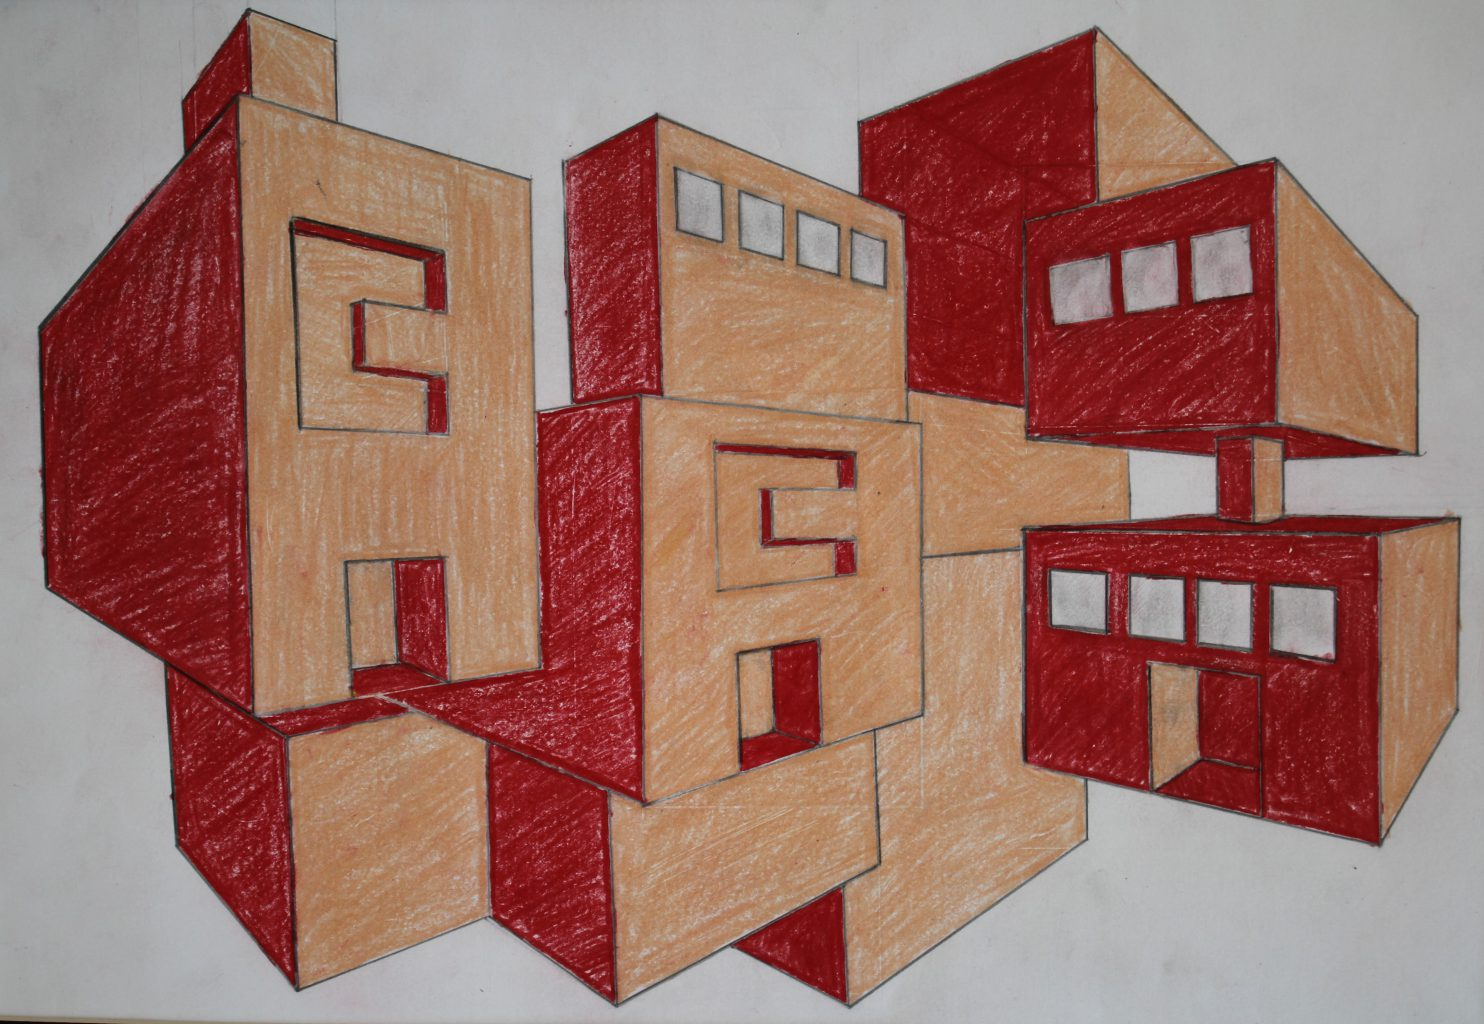 a 3-d drawing of blocks, using a peach and red color theme